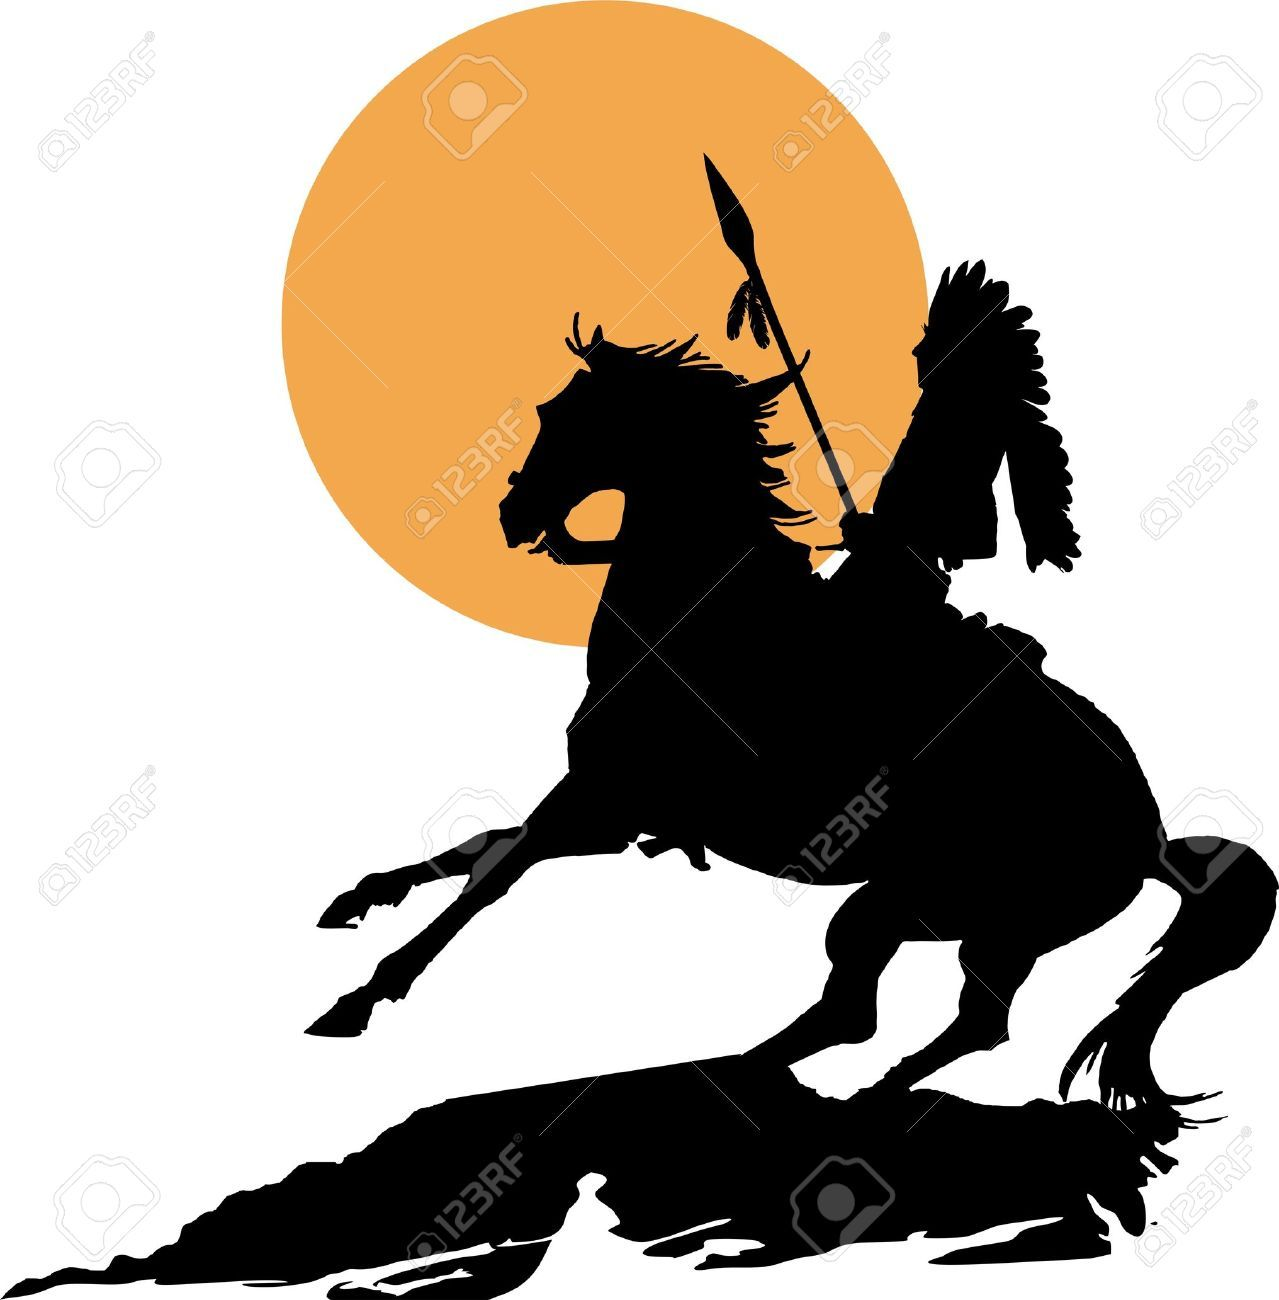 1279x1300 Native American On Horseback Native Indian Horse Silhouette